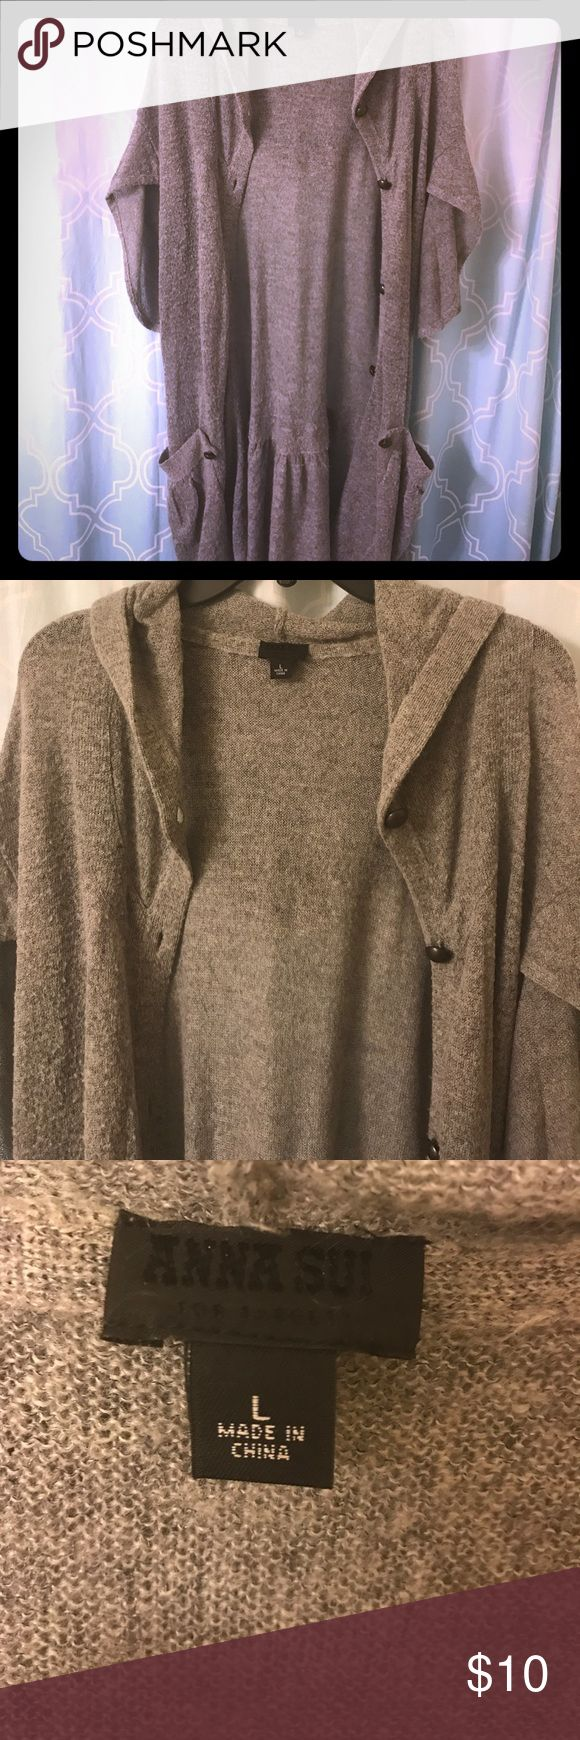 Grey slouchy sweater by Anna Sui Grey floor length sweater by Anna Sui! I've had this sweater so long! It's got that worn edgy look to it, which I love. It goes great with skinny jeans and a pair of black boots! Anna Sui Sweaters Shrugs & Ponchos